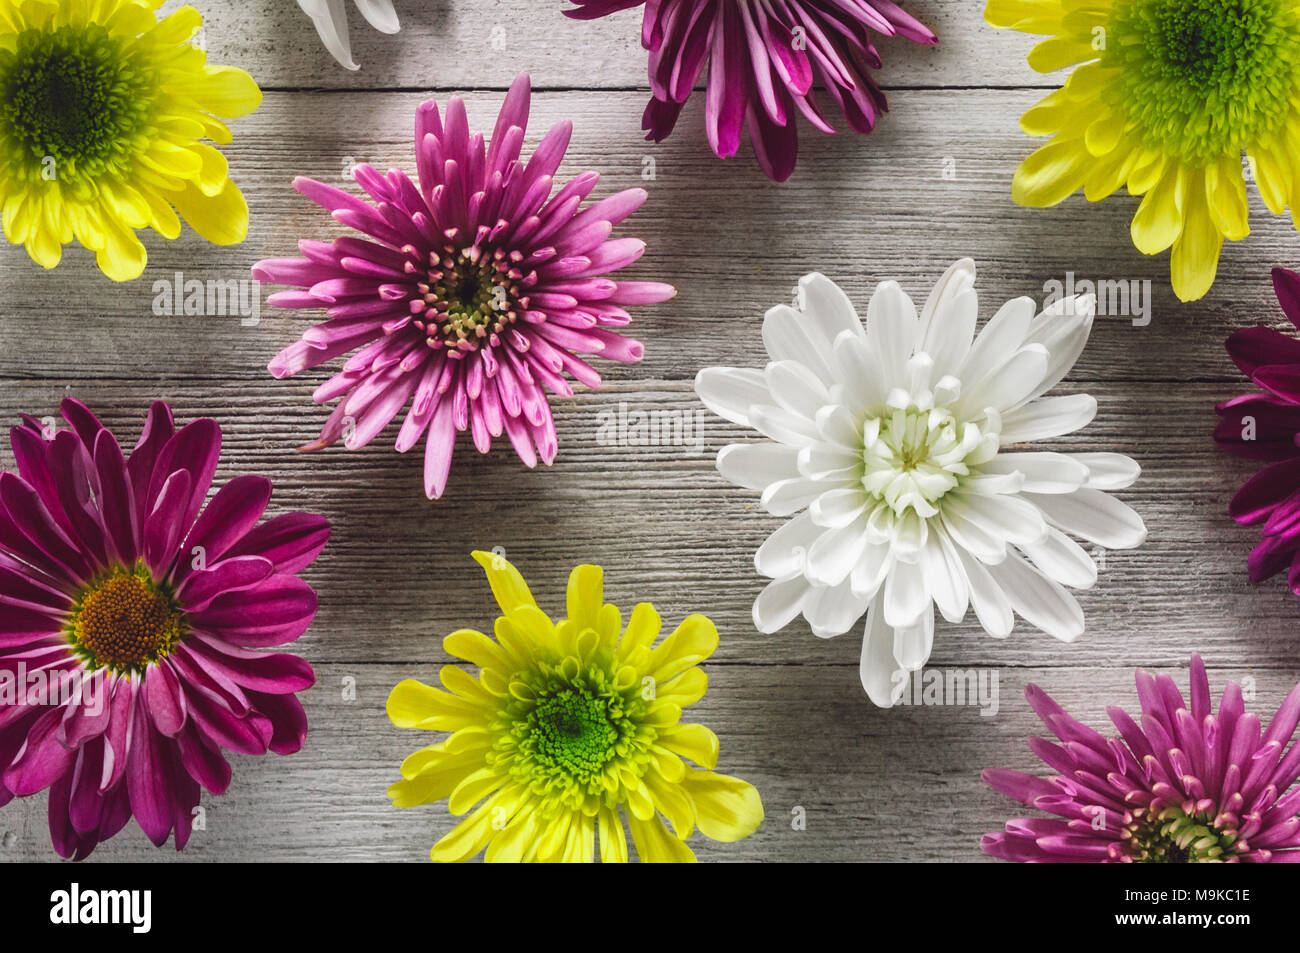 A Variety of Chrysanthemum Flowers Arranged on White Rustics Table - Stock Image